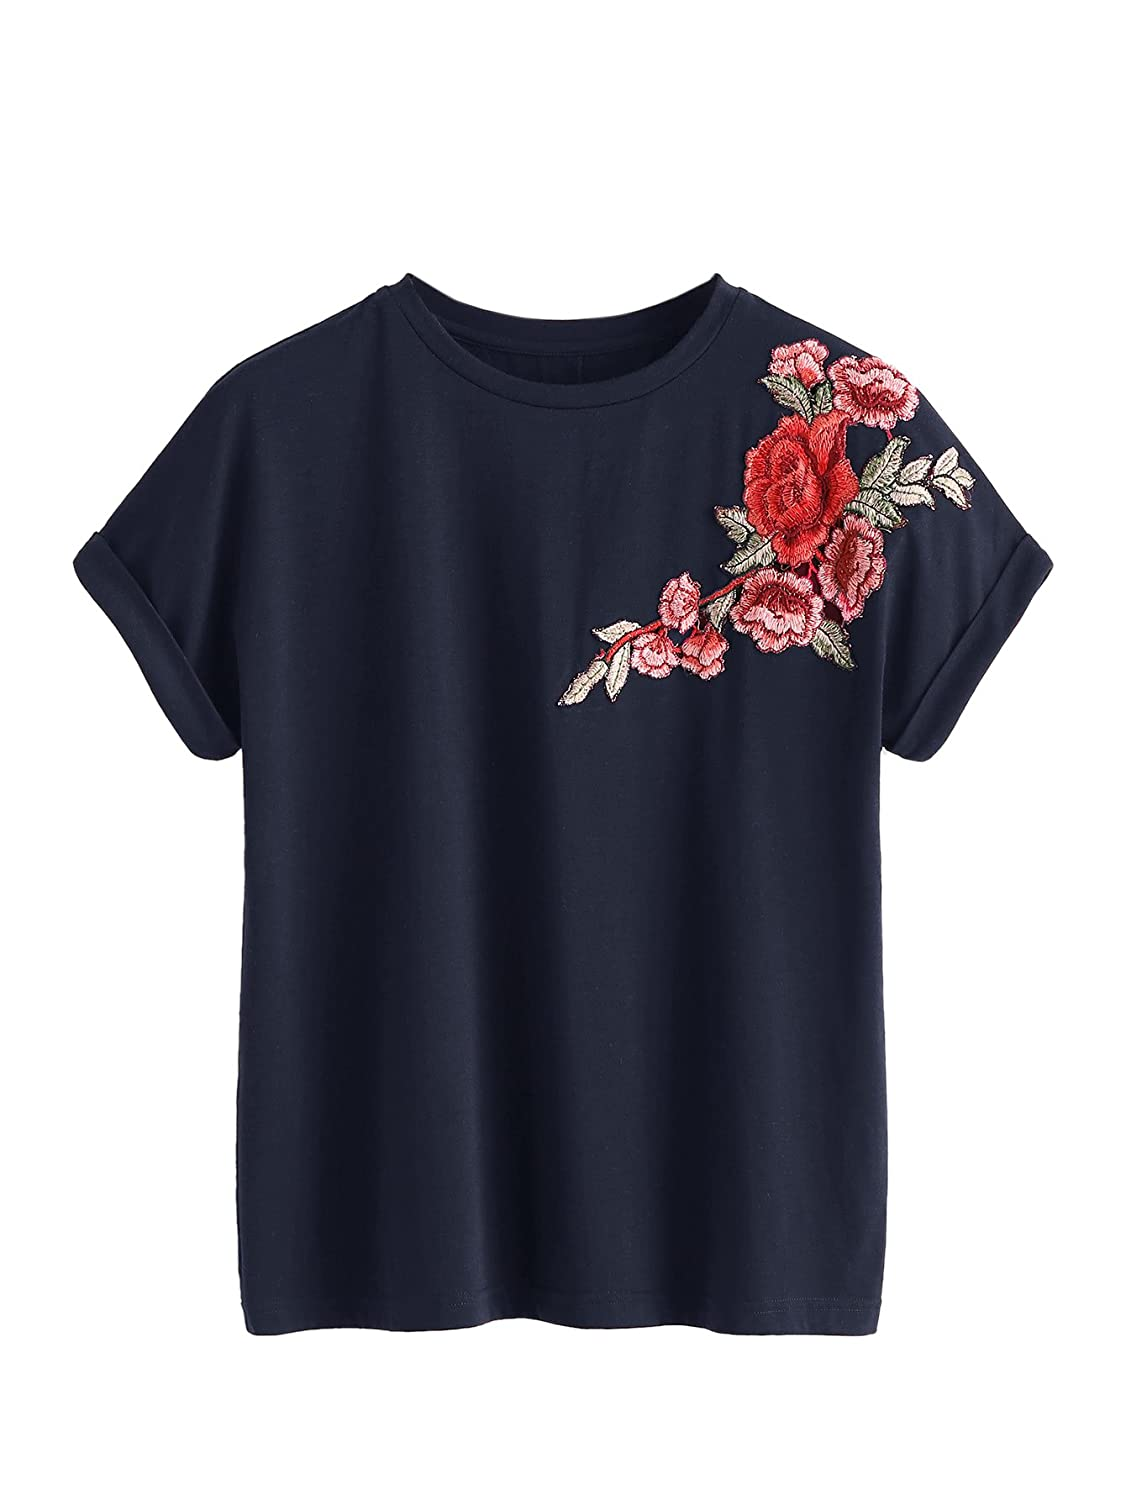 6b1efd5cb Amazon.com: Romwe Women's Floral Embroidery Cuffed Short Sleeve Casual Tees  T-Shirt Tops: Clothing